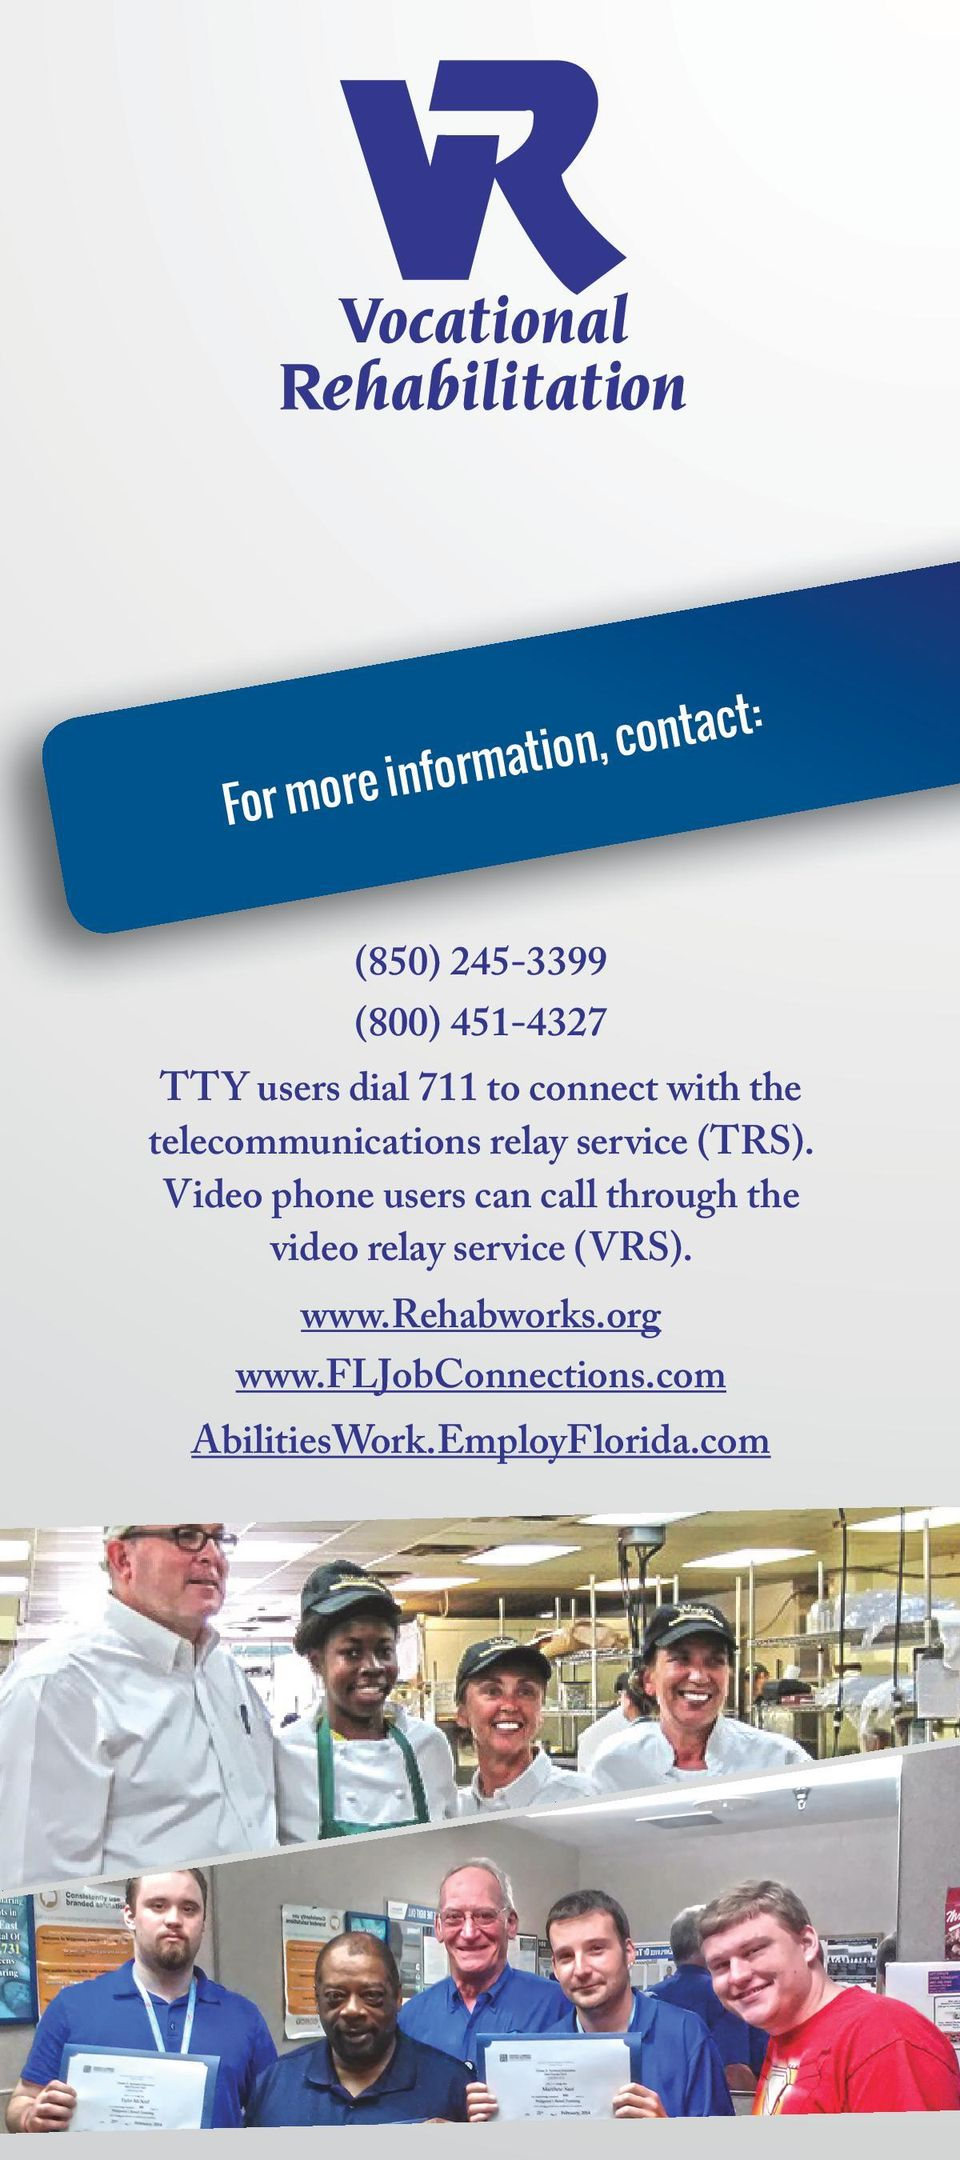 Video phone users can call through the video relay service (VRS). www.